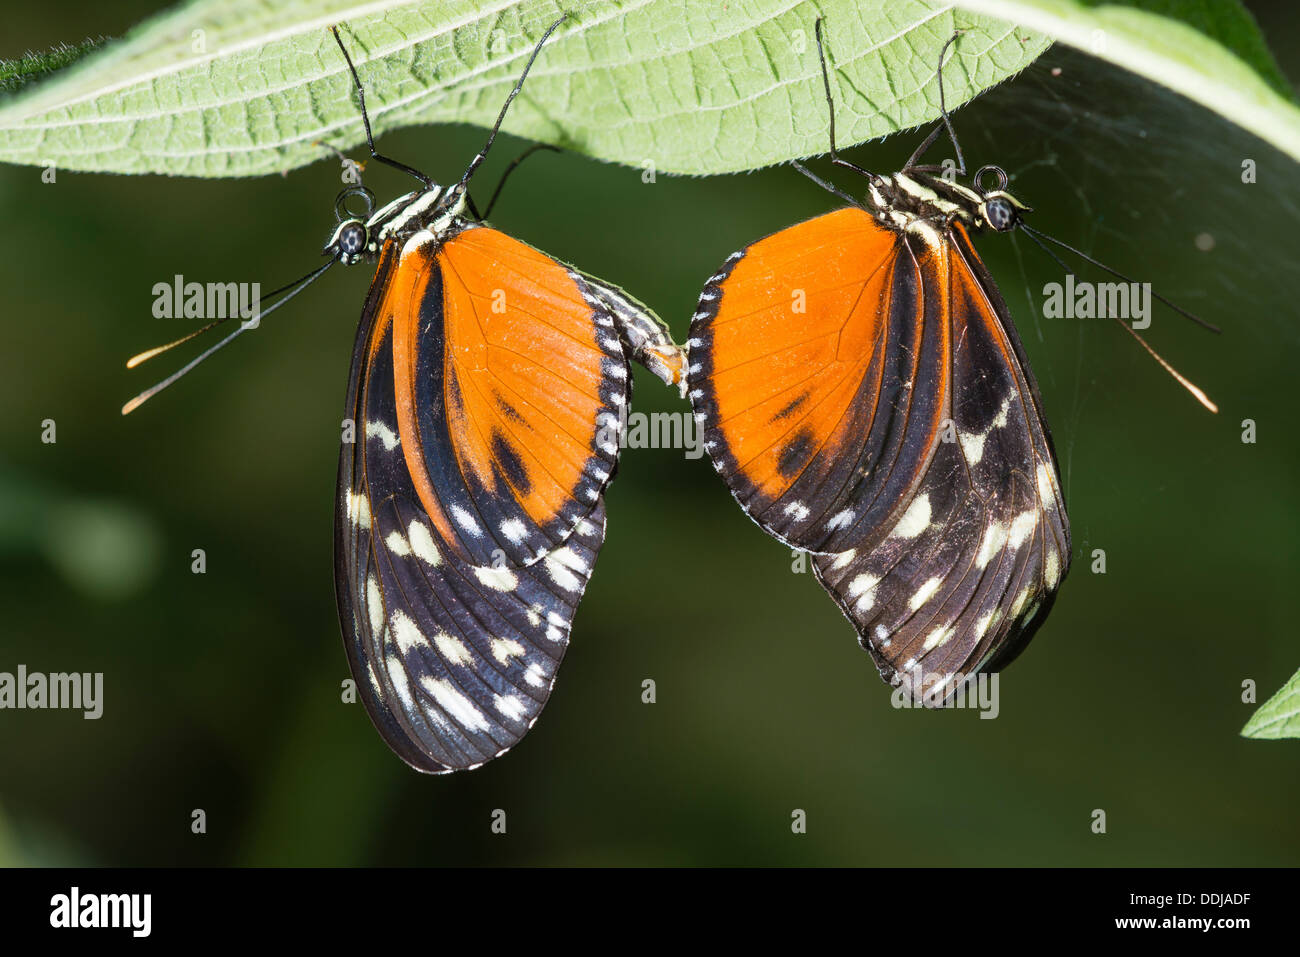 A pair of Tiger Longwings mating - Stock Image